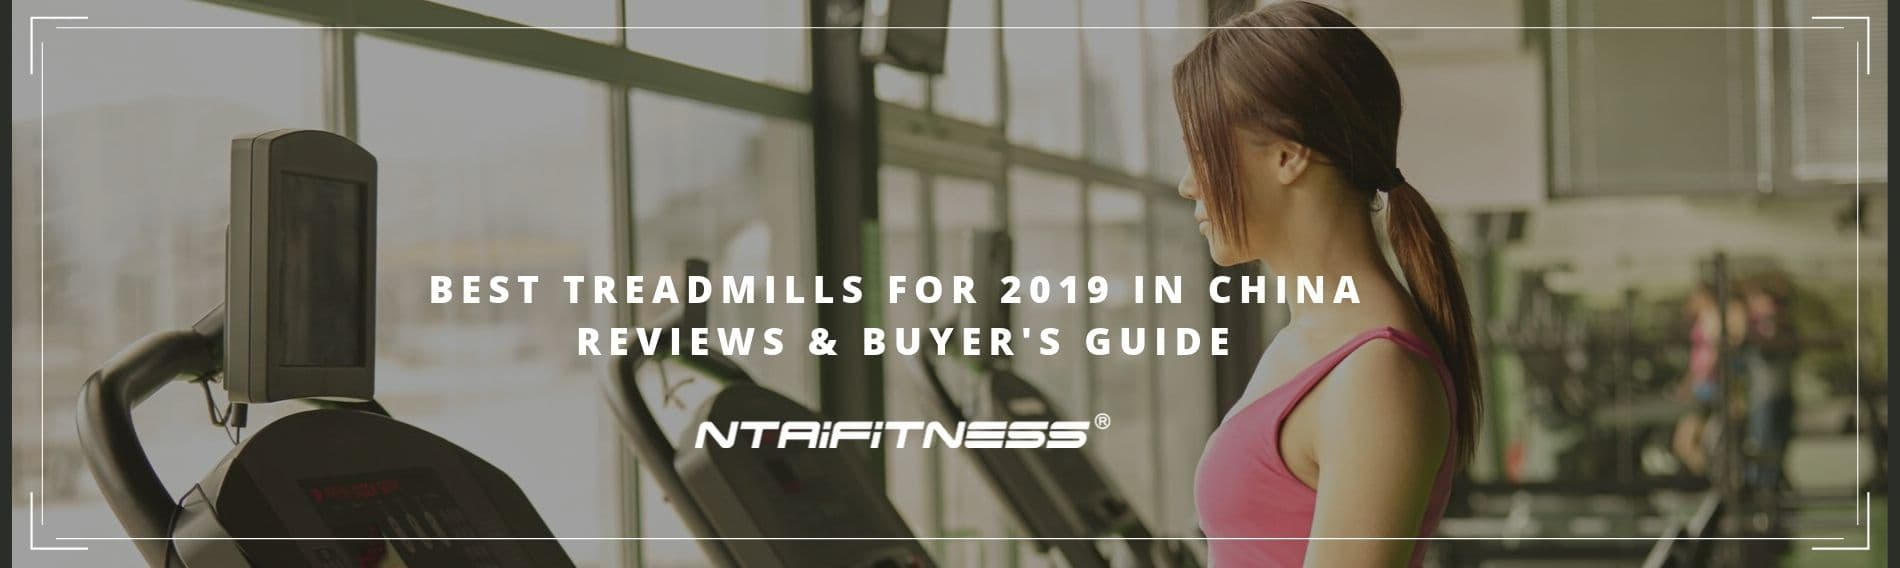 Best Treadmills for 2021 in China - Reviews & Buyer's Guide